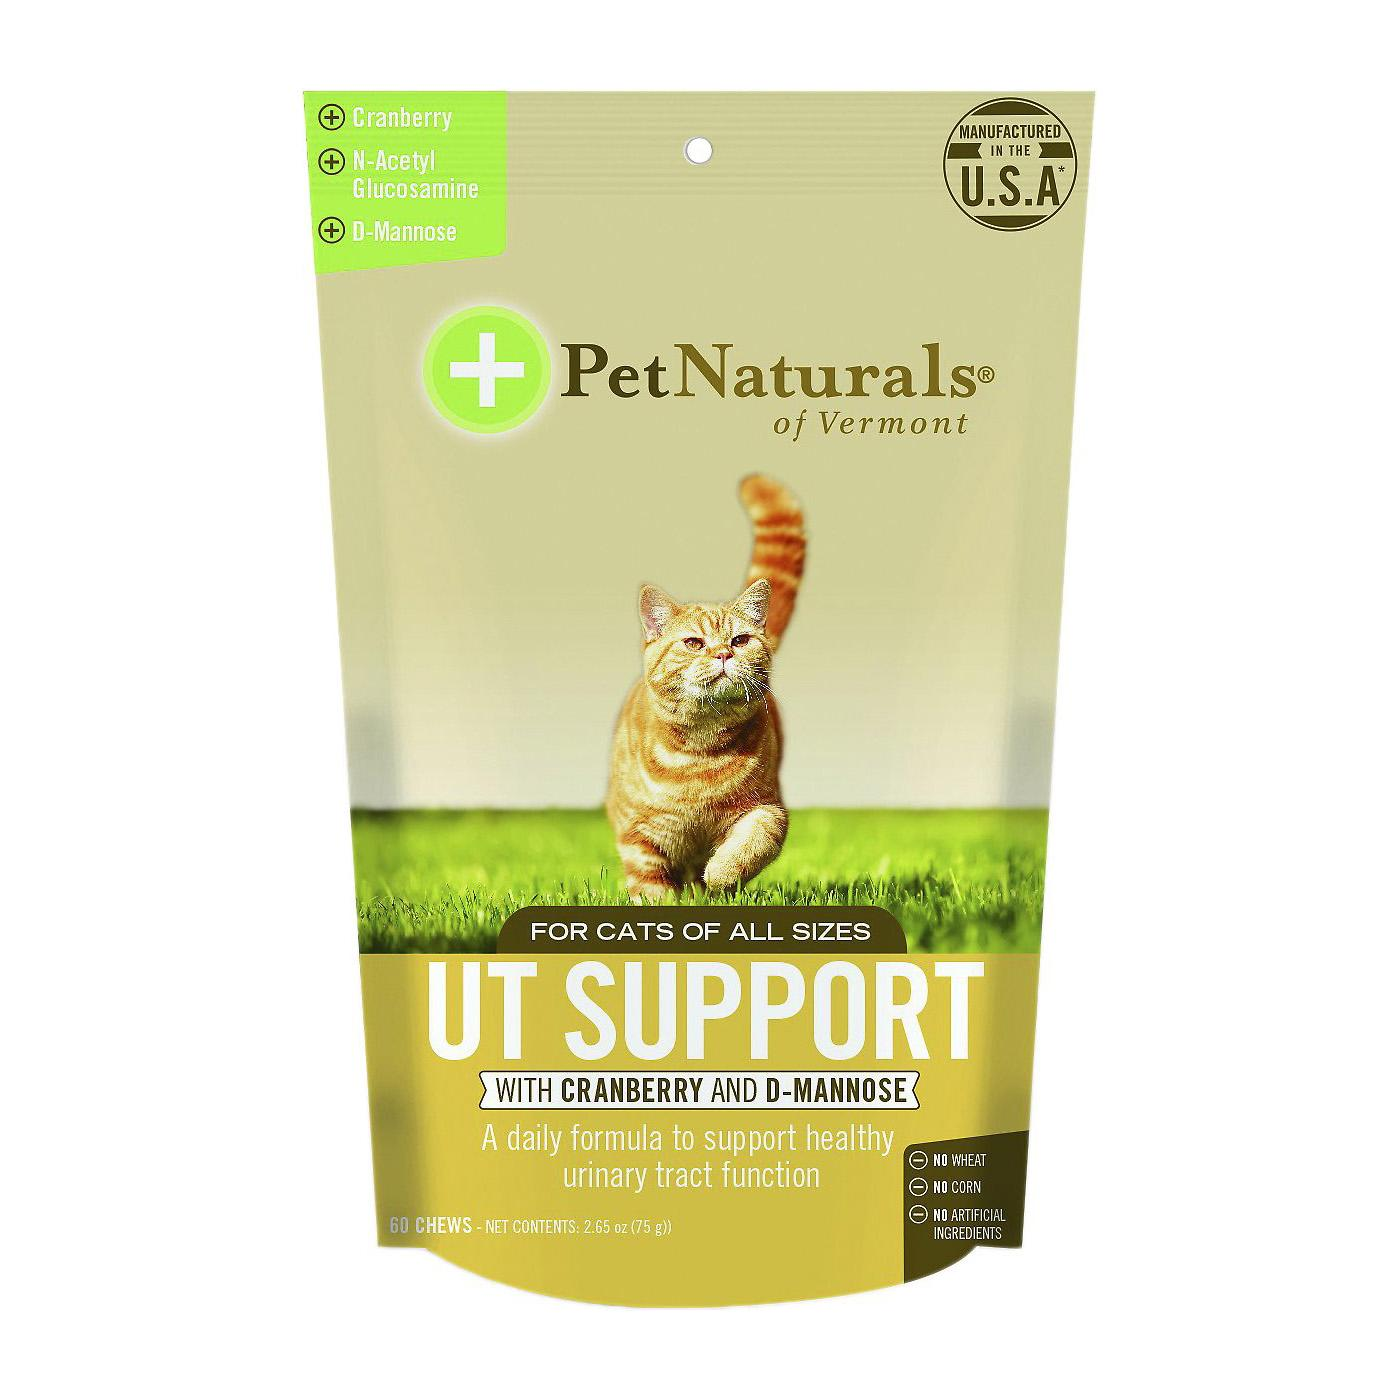 Pet Naturals Urinary Tract Support for Cats